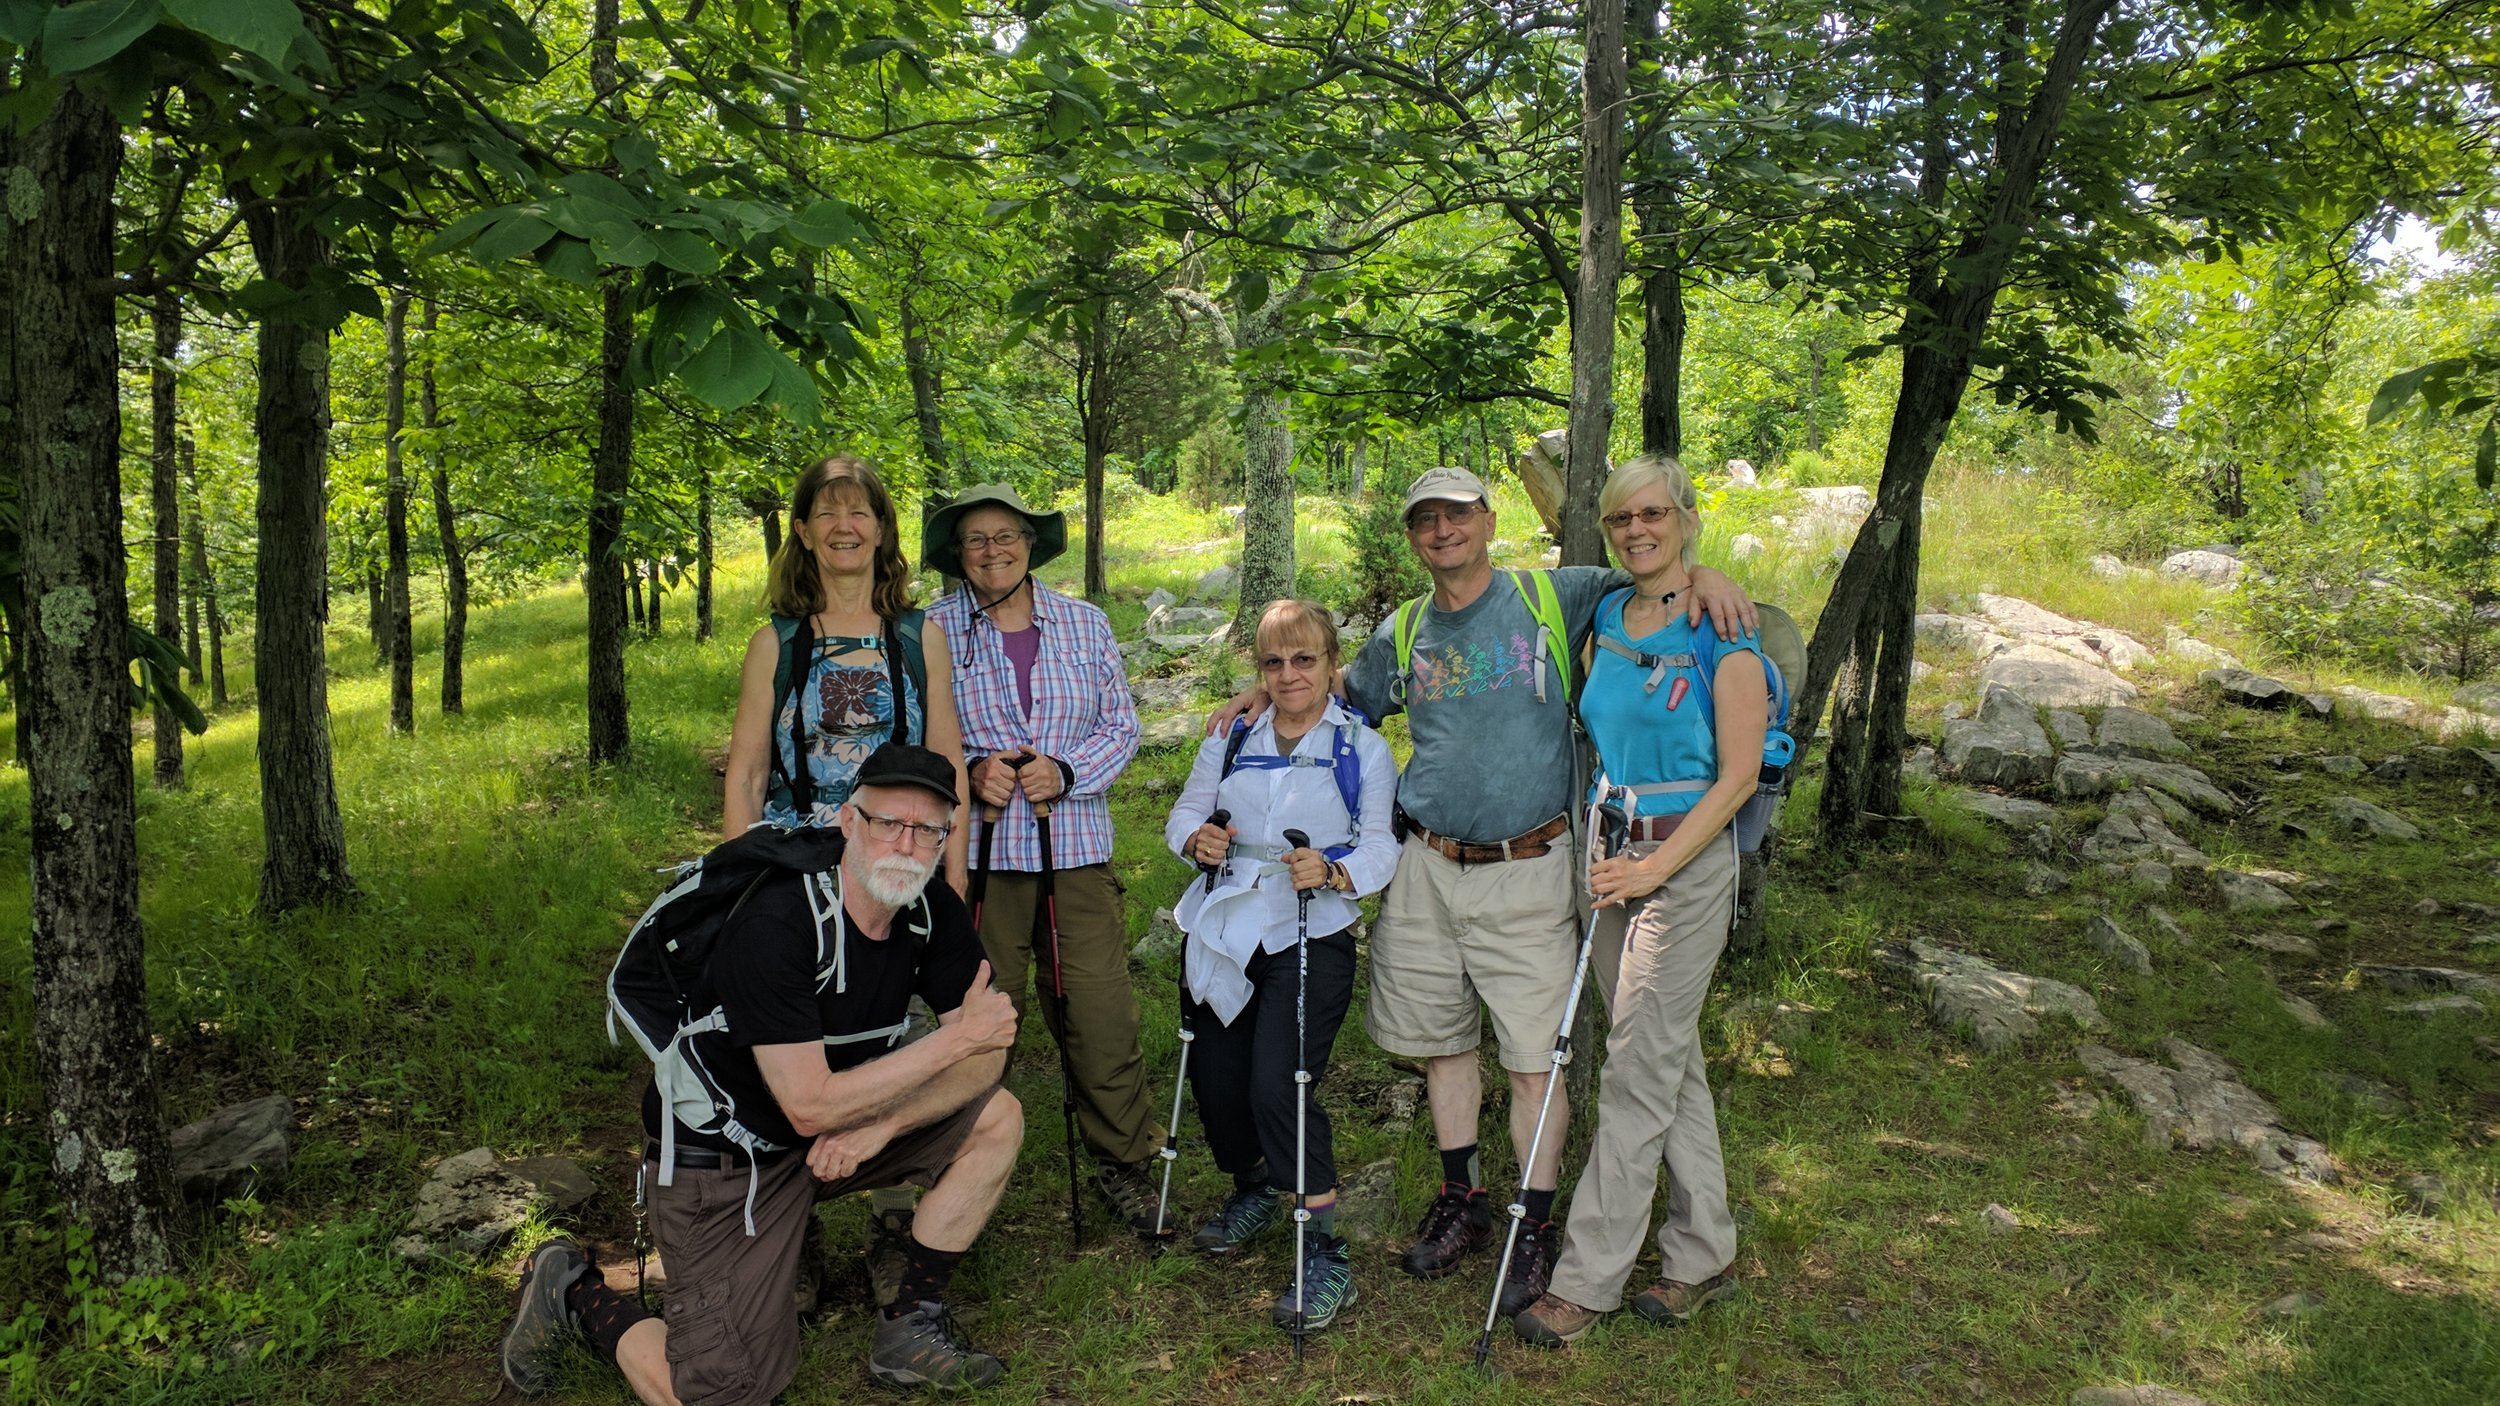 Our amazing, fun Trail Angels!   Ken, Evelyn, Pat, Doreen, Dave, and Kelly.